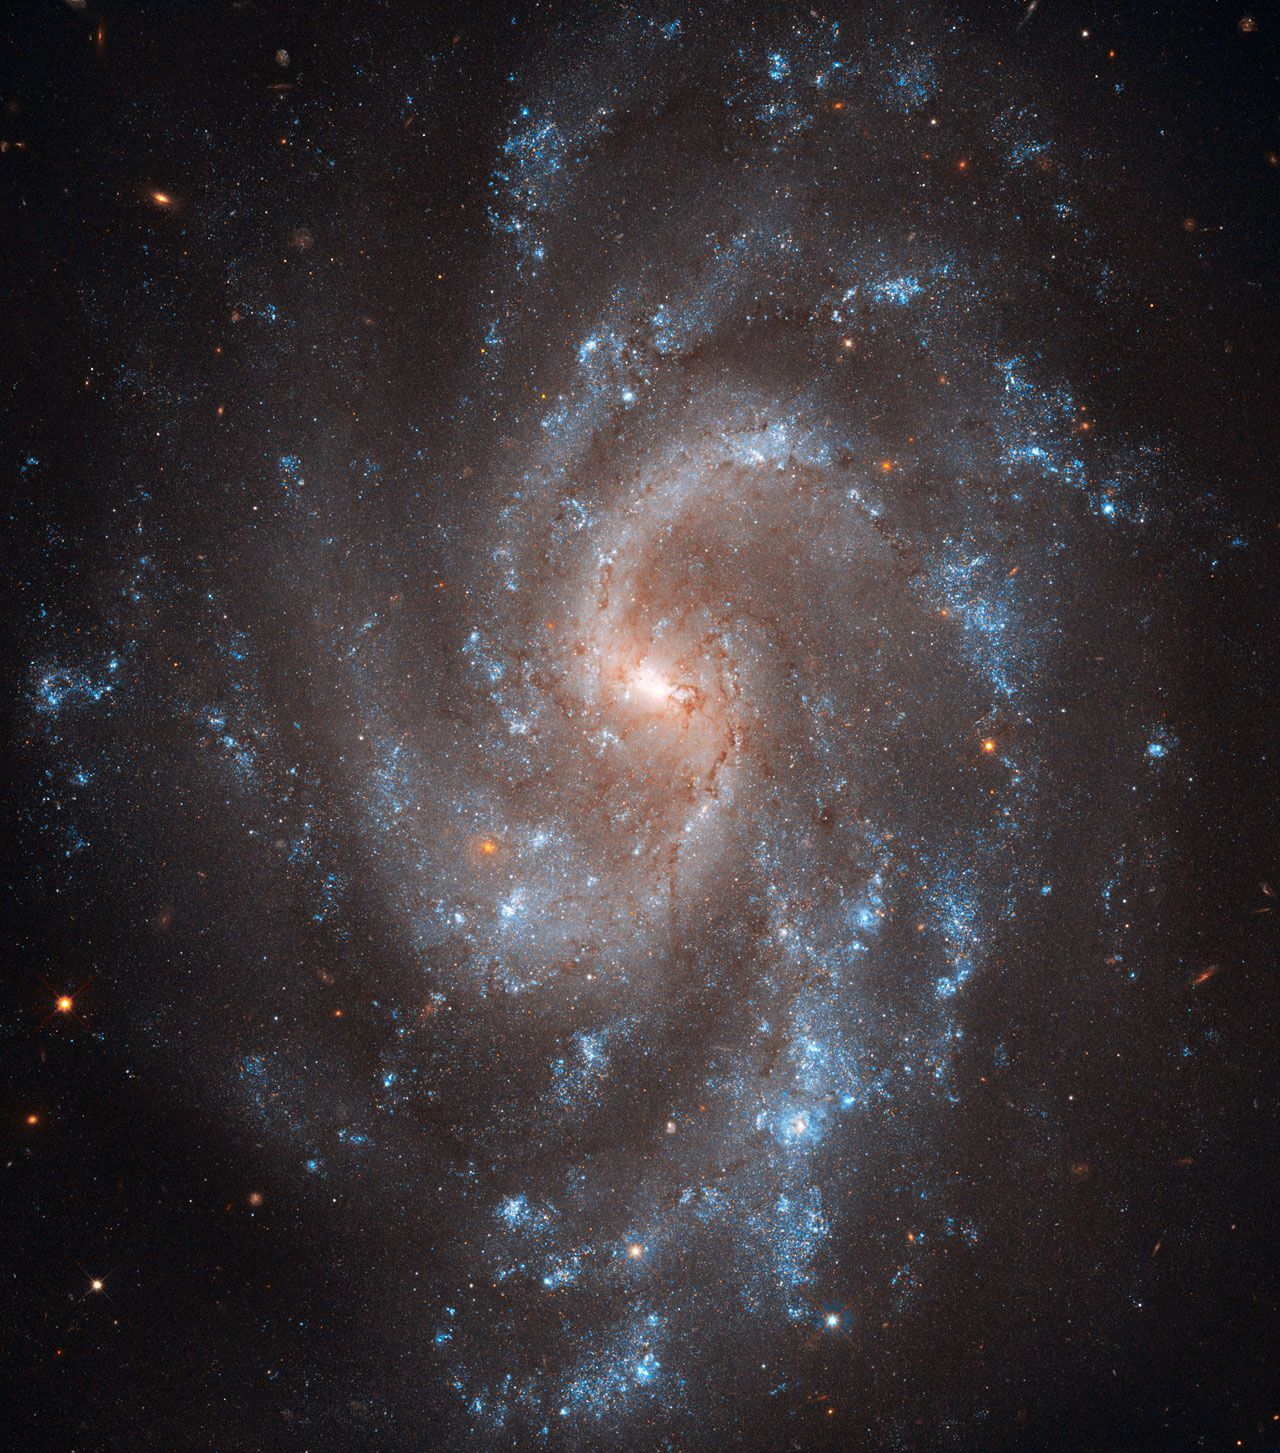 Galaxie NGC 5584, Constellation de la Vierge, Photo ESA Hubble 2011